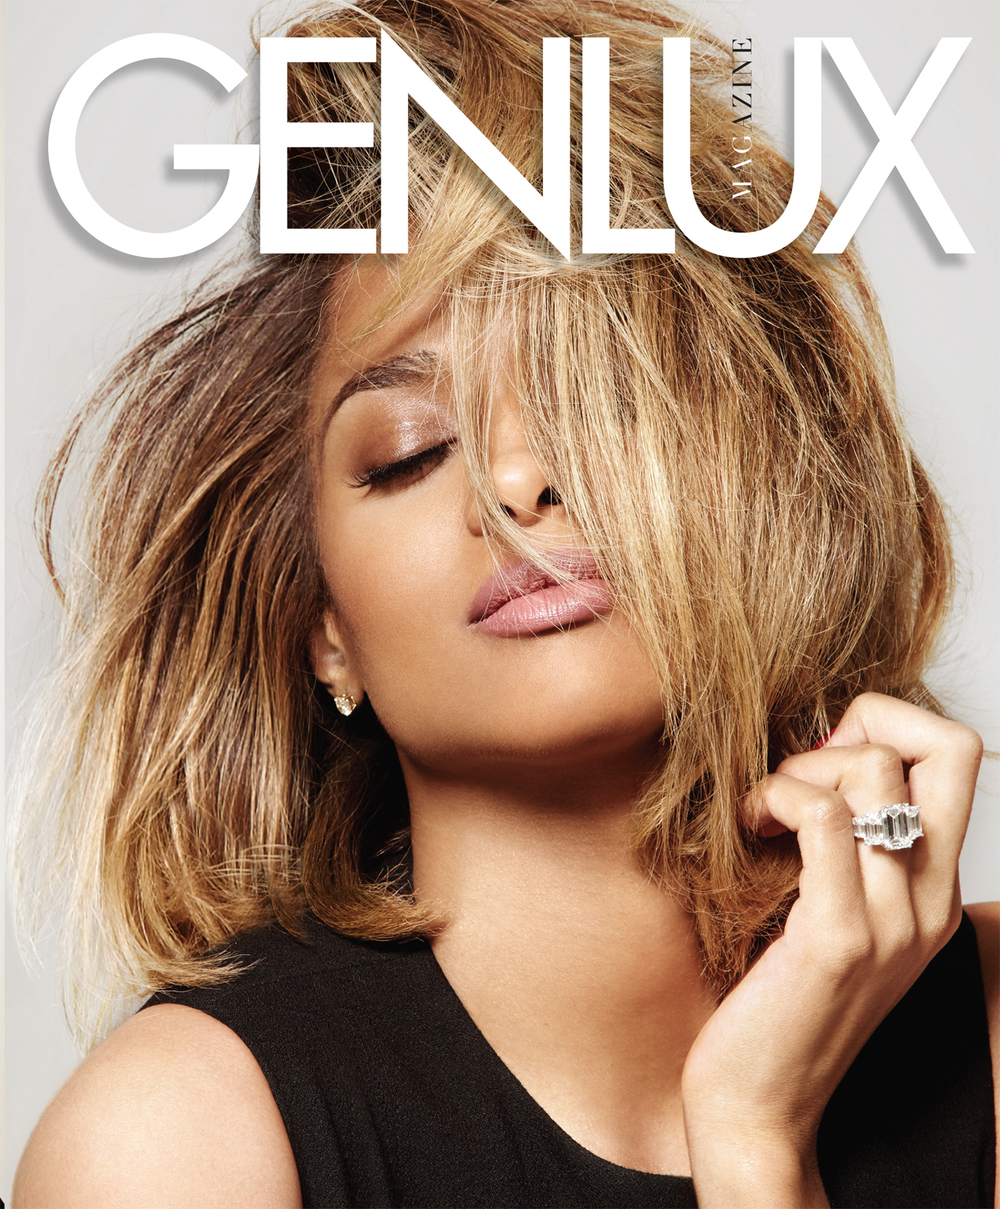 genlux ciara cover - version A